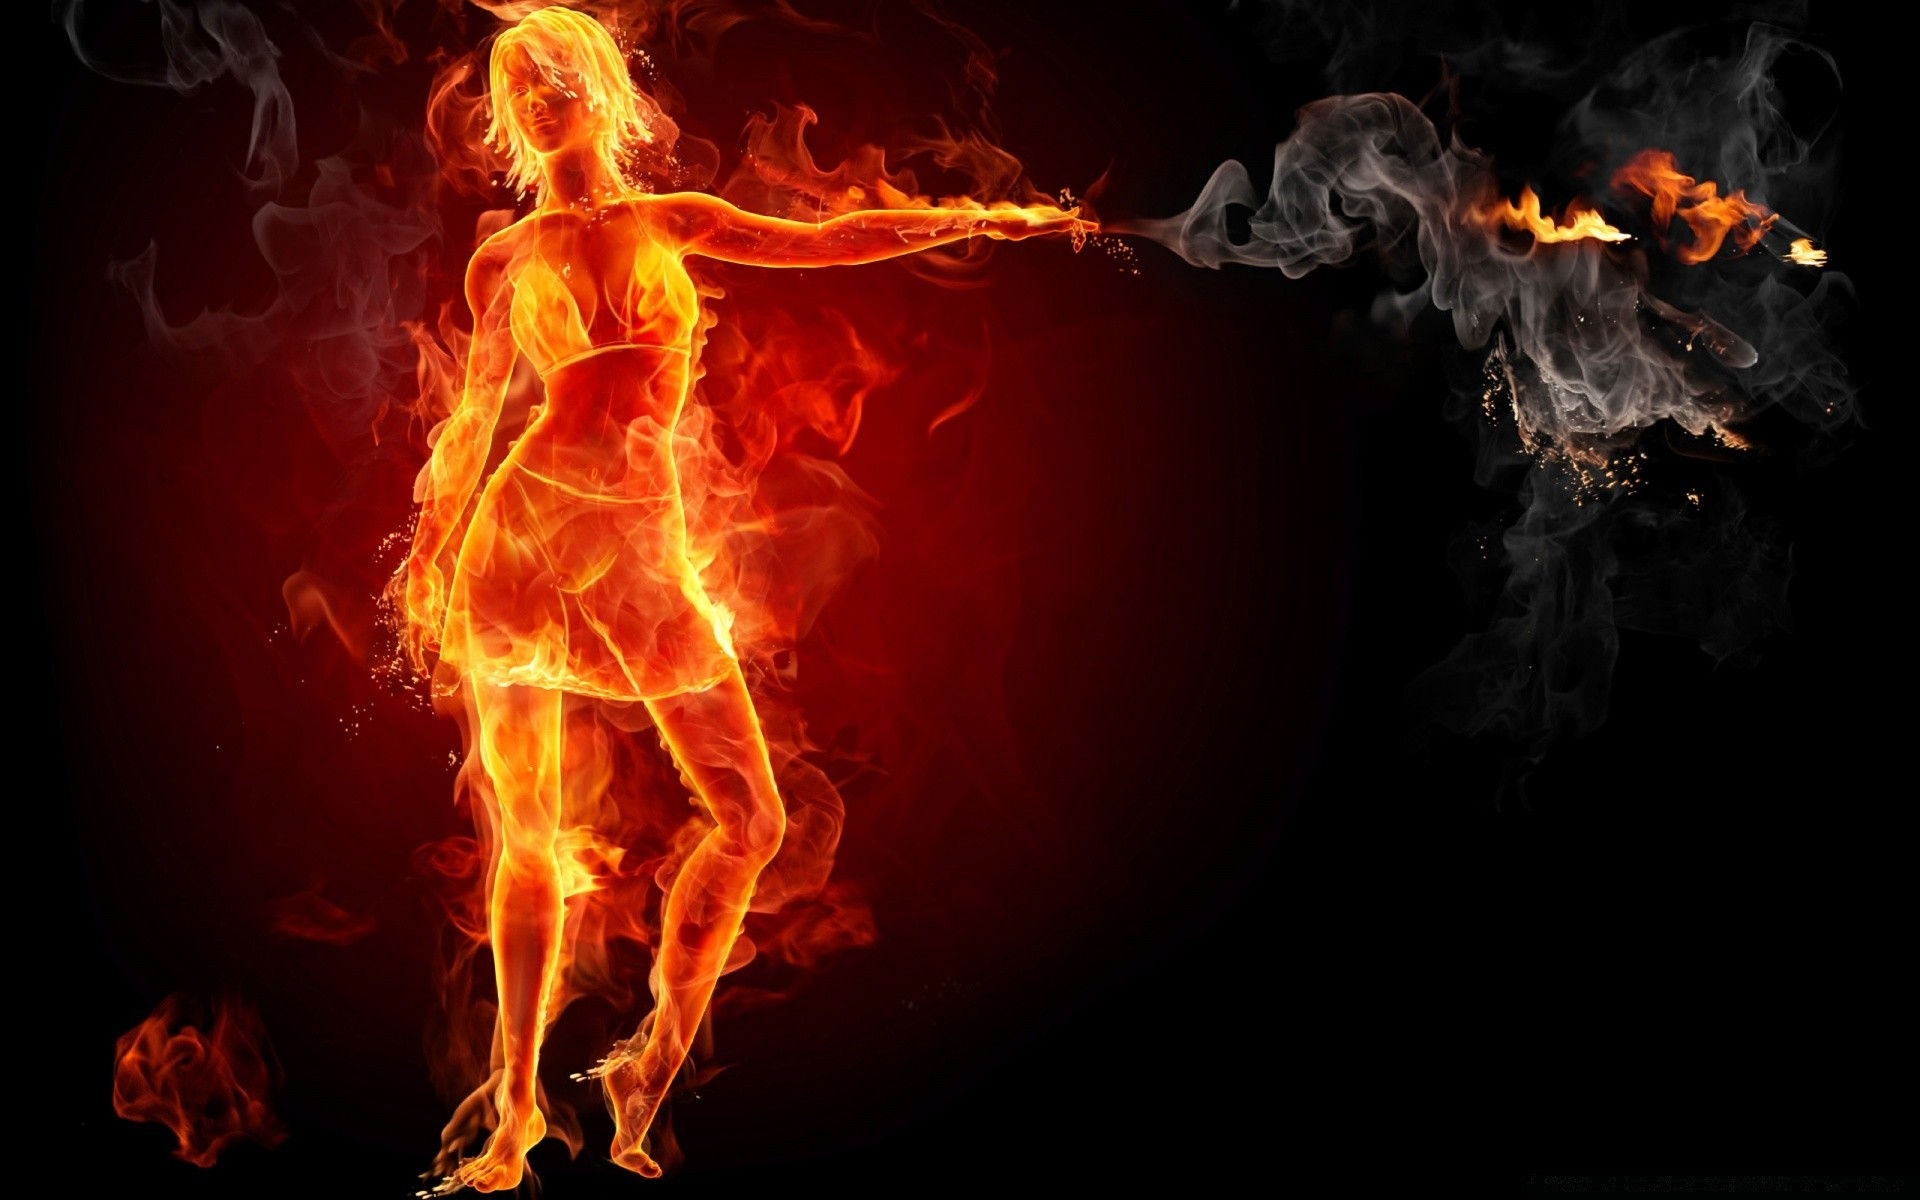 Hot Girl On Fire Phone Wallpapers